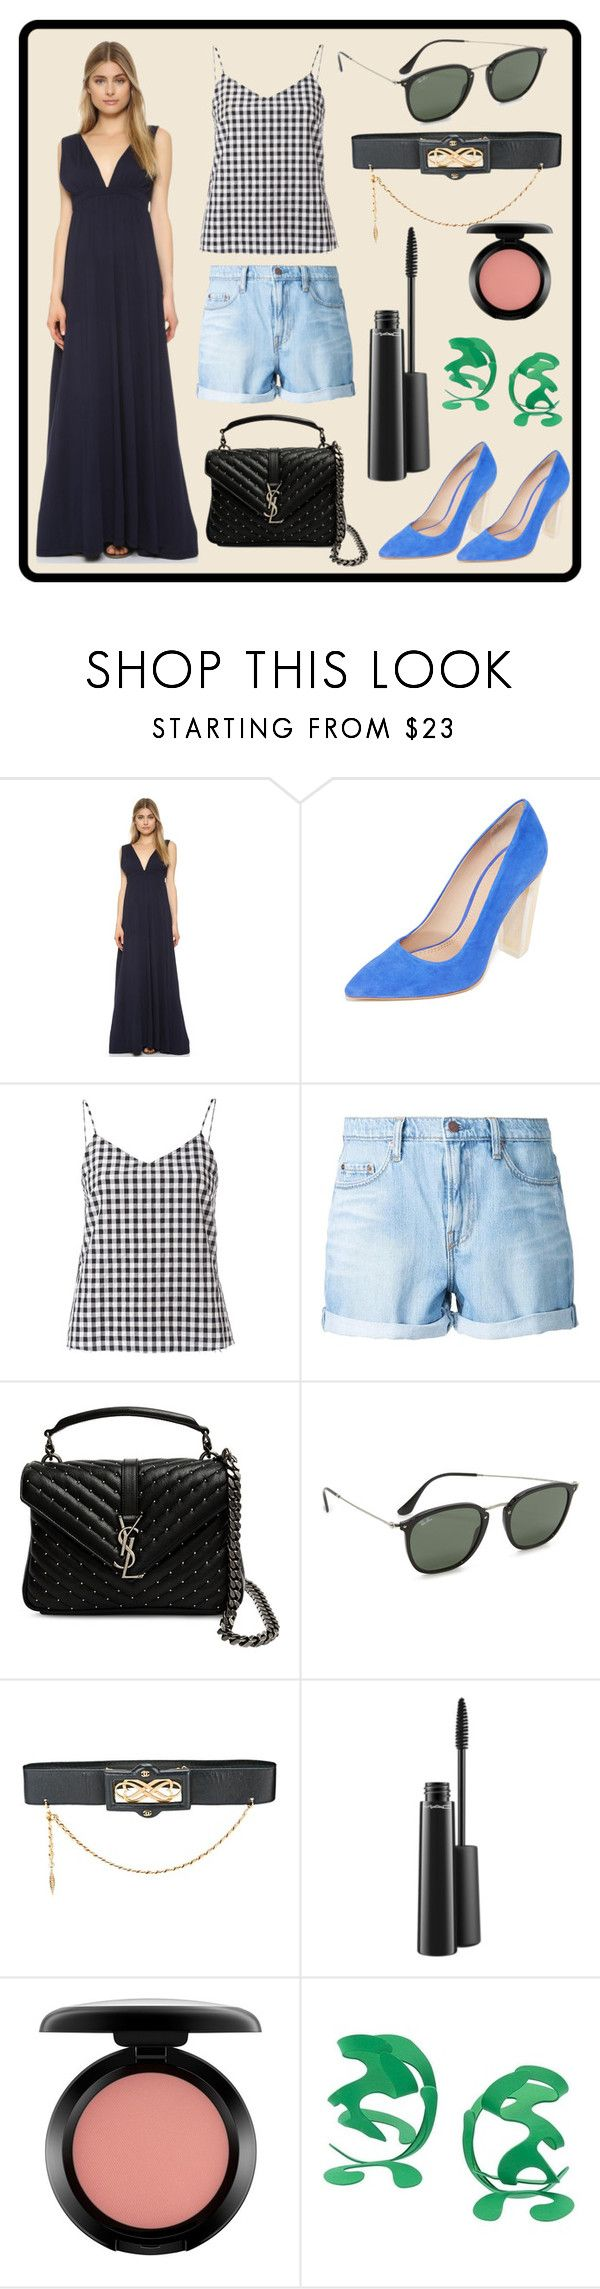 """""""Monday Special"""" by cate-jennifer ❤ liked on Polyvore featuring Bobi, Tory Burch, Marques'Almeida, Nobody Denim, Yves Saint Laurent, Ray-Ban, Chanel, MAC Cosmetics and Rosie Assoulin"""